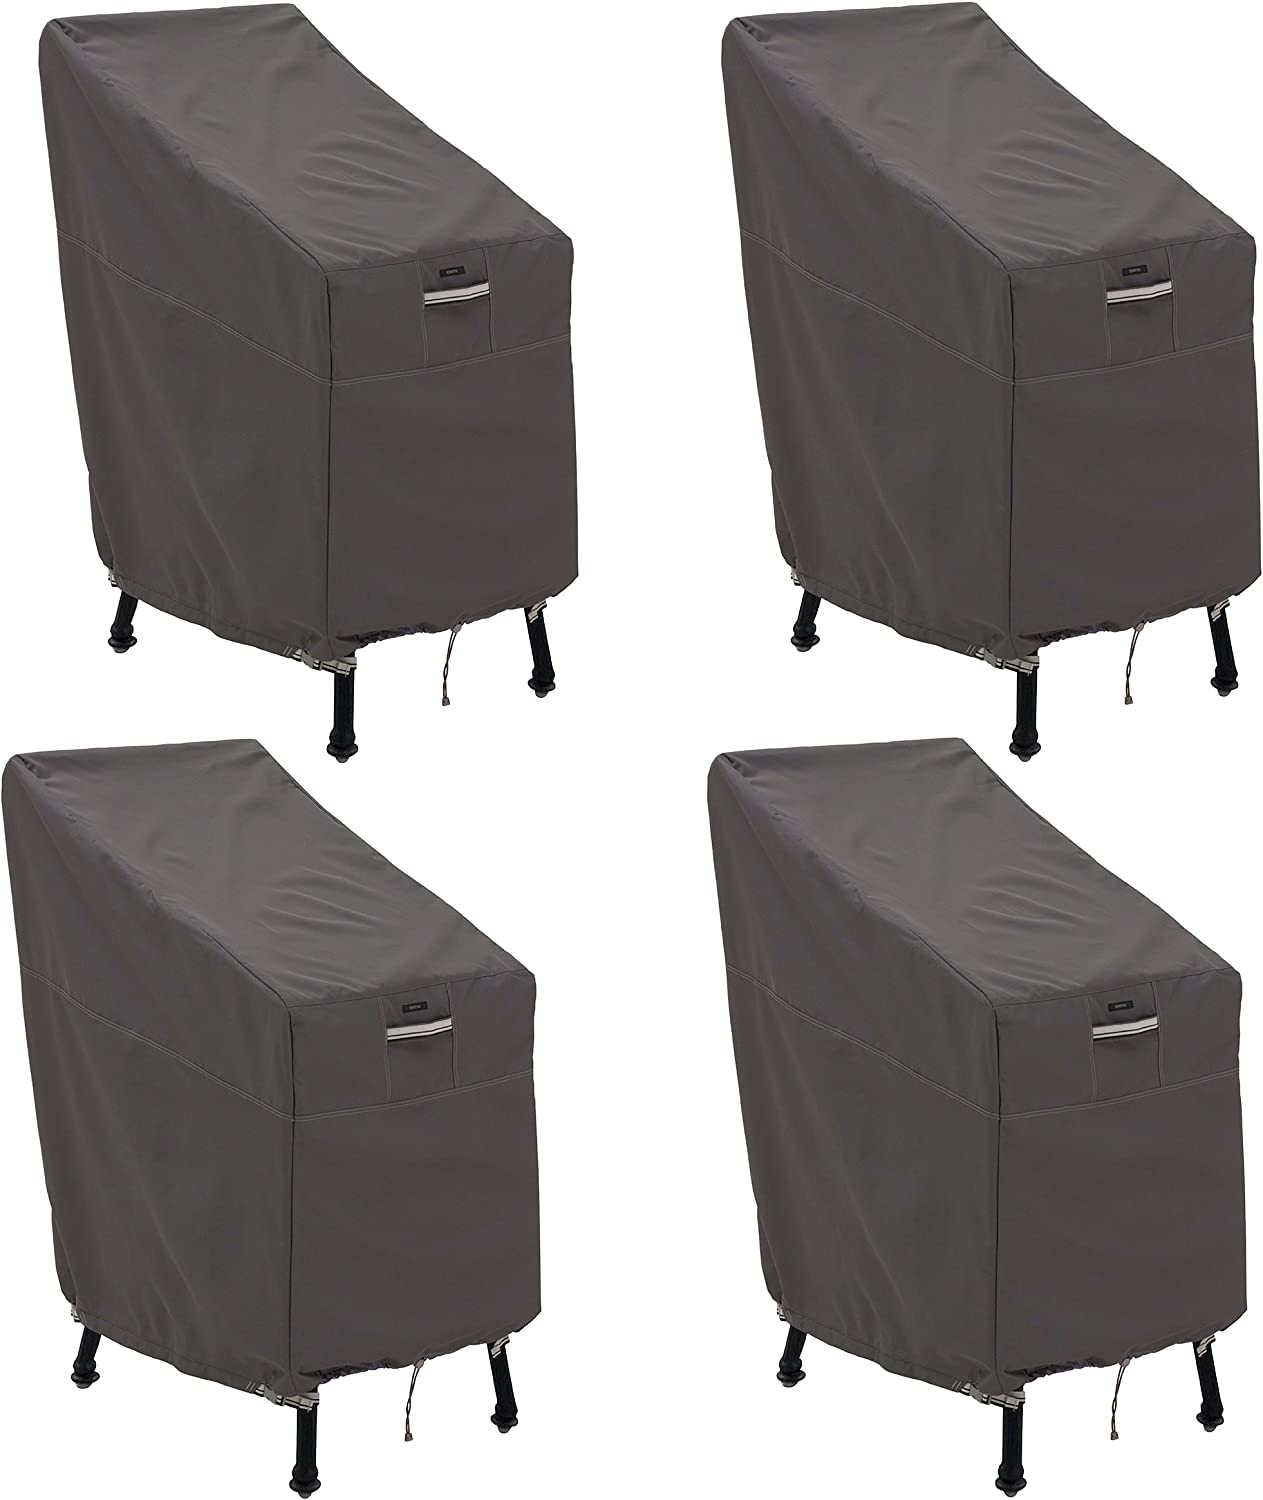 Classic Accessories Ravenna Patio Bar Chair/Stool Cover, 4-Pack